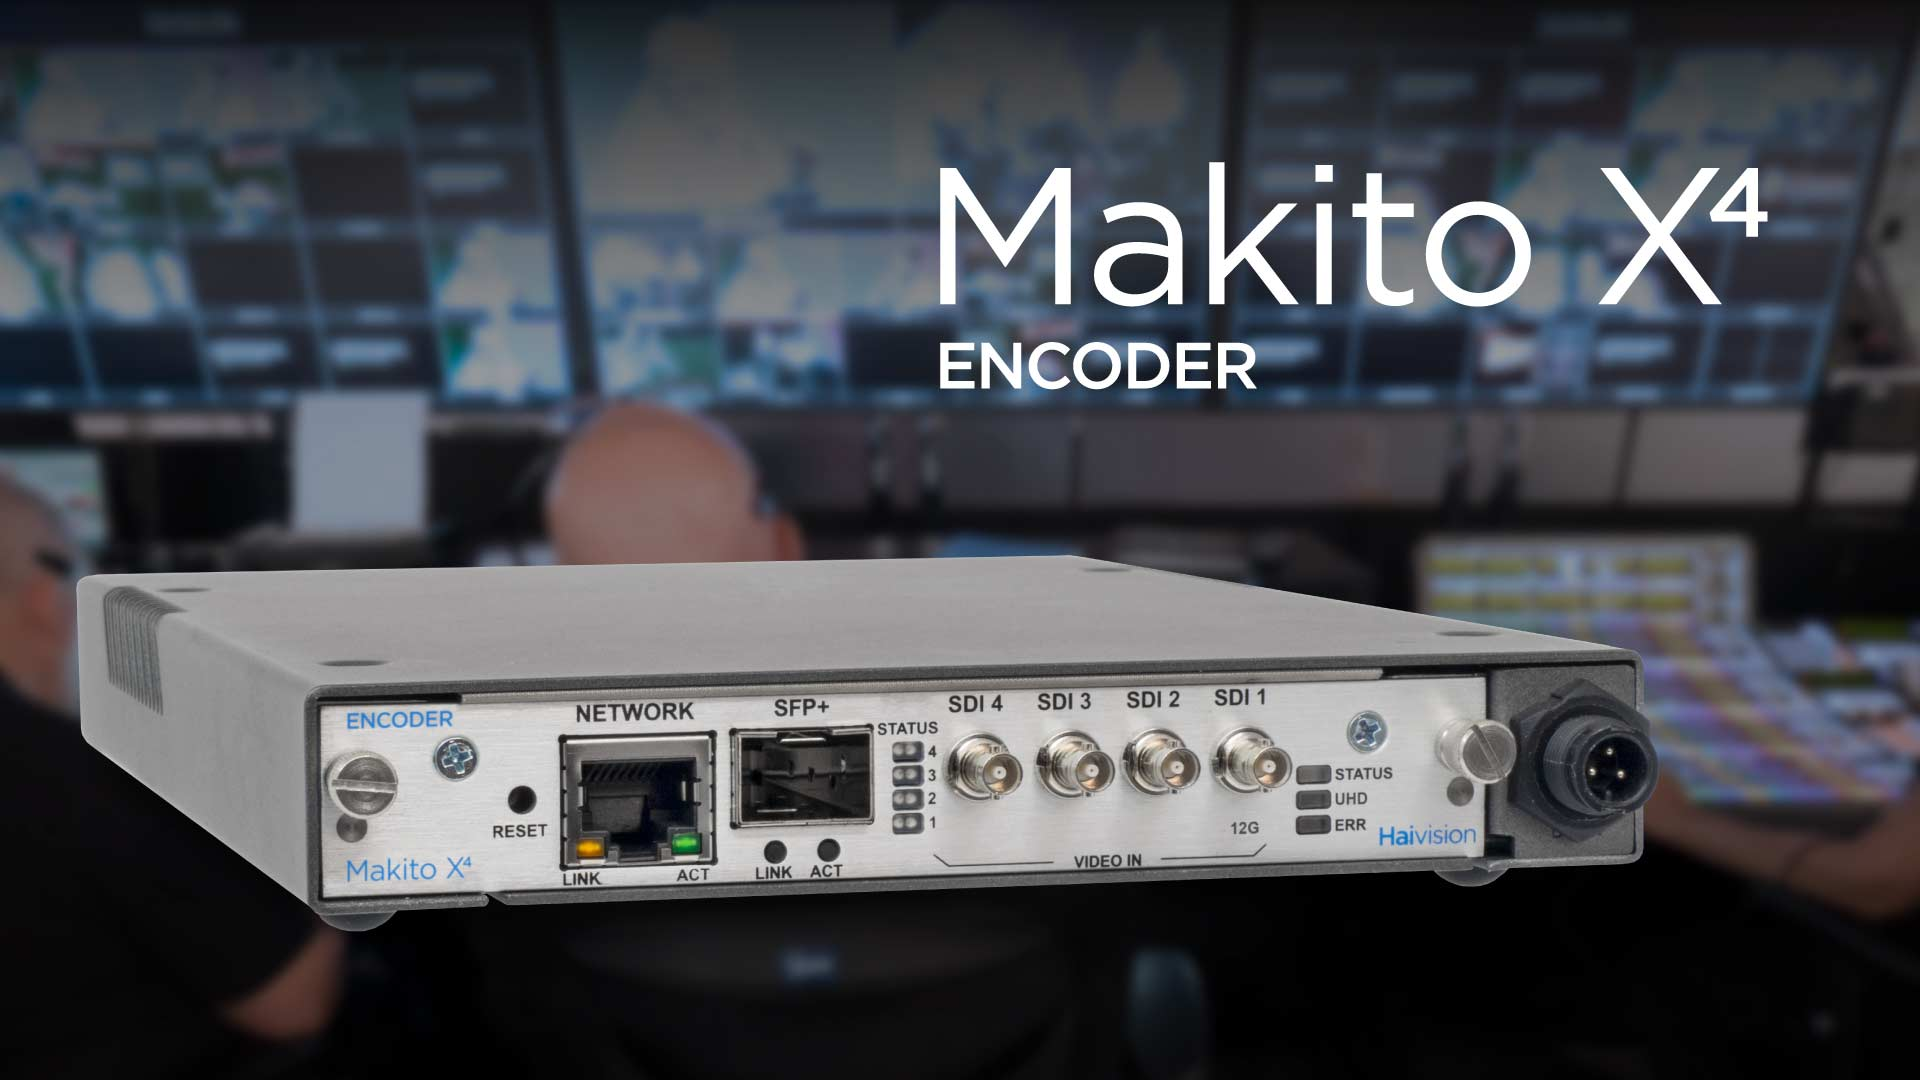 Makito X4 Video Encoder